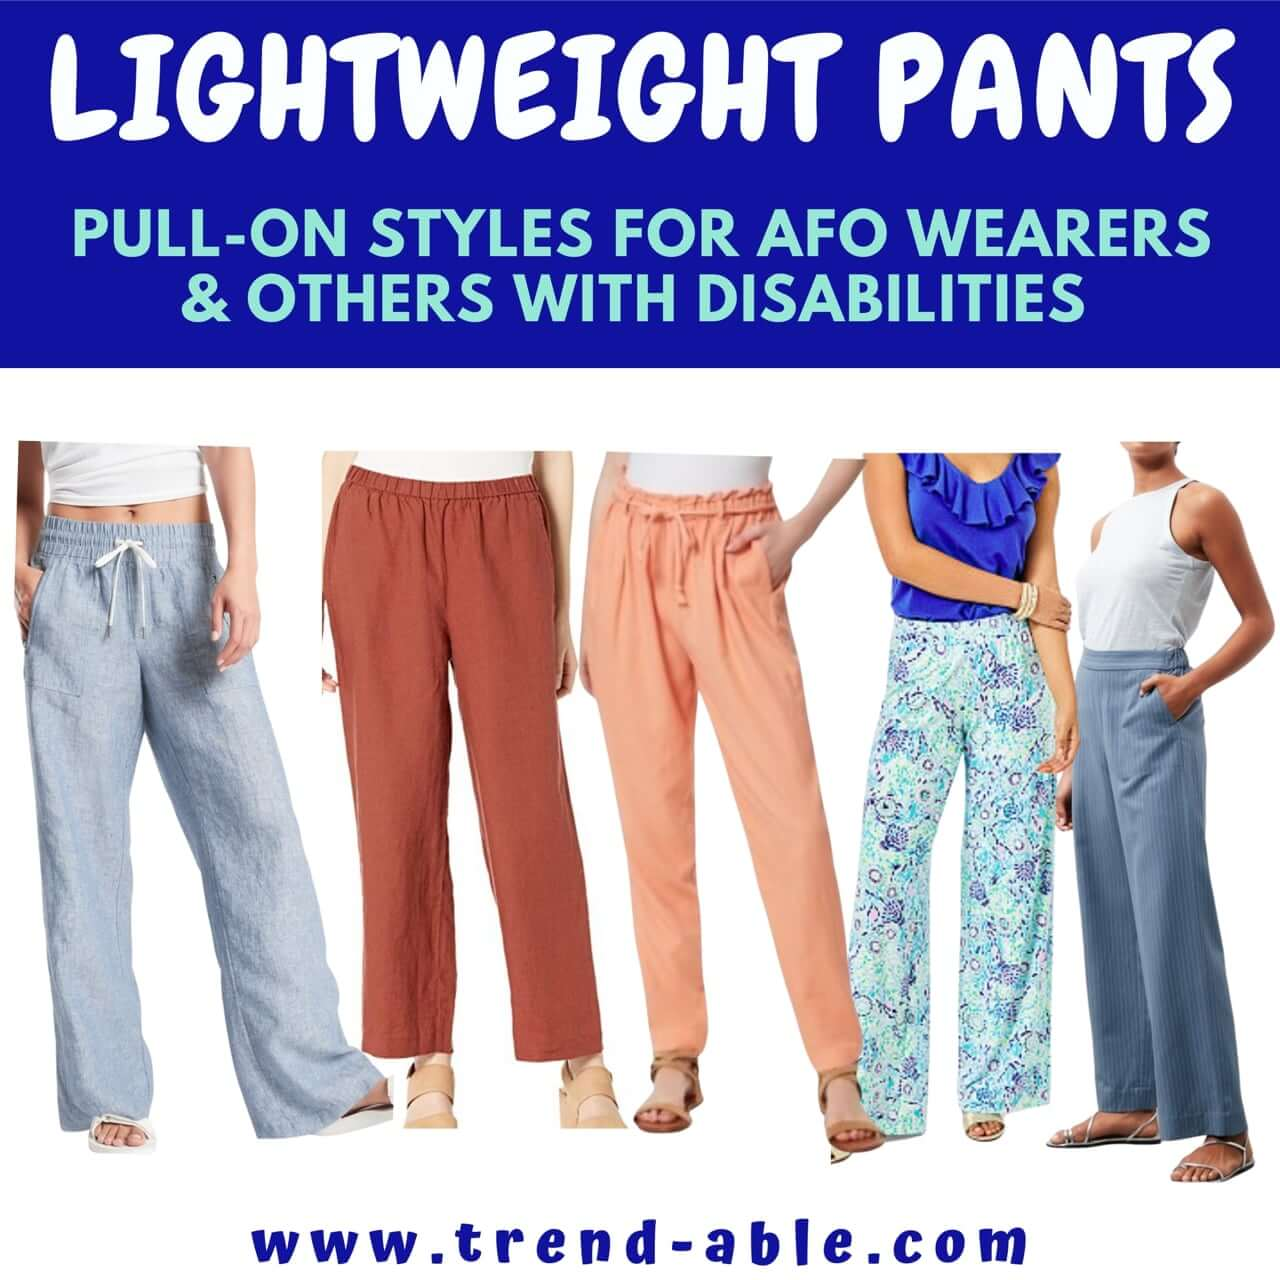 Top summer outfit ideas for people who wear afos and orthotics.